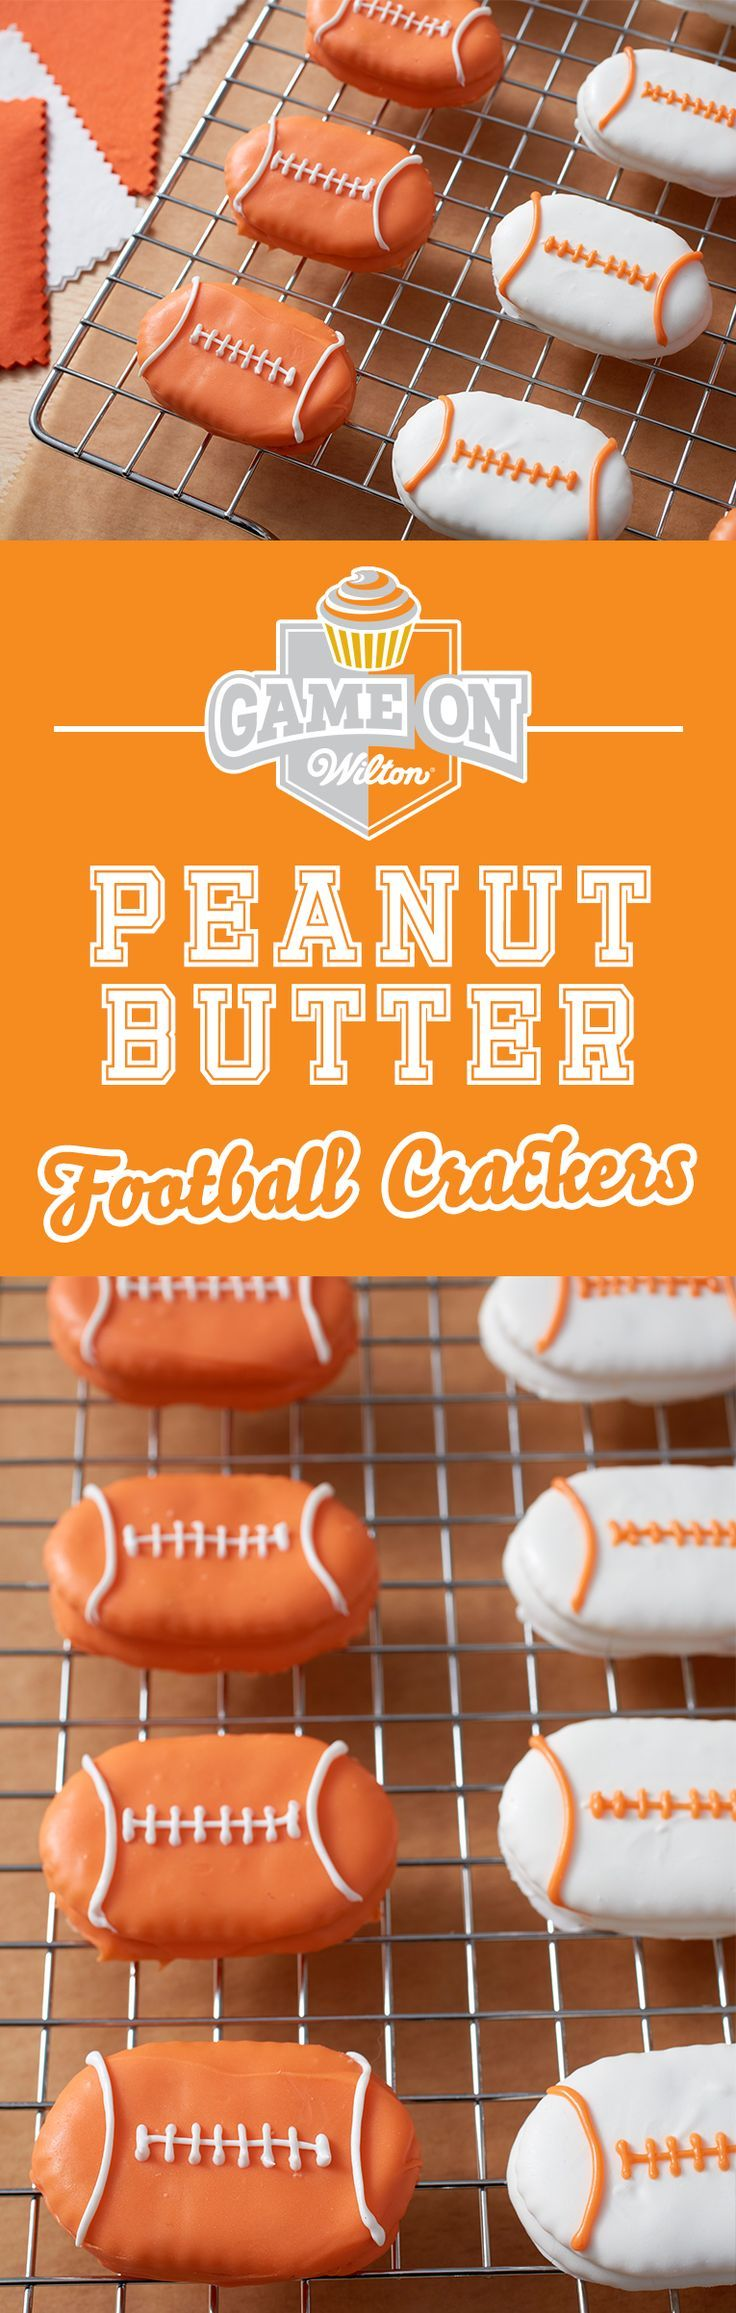 PB and crackers just got a whole lot tastier! Learn how to make these football-shaped peanut butter and cracker sandwiches dipped in delicious Candy Melts candy. These little sandwiches make a great snack for youth football teams and fans, or whenever you're watching the big game!